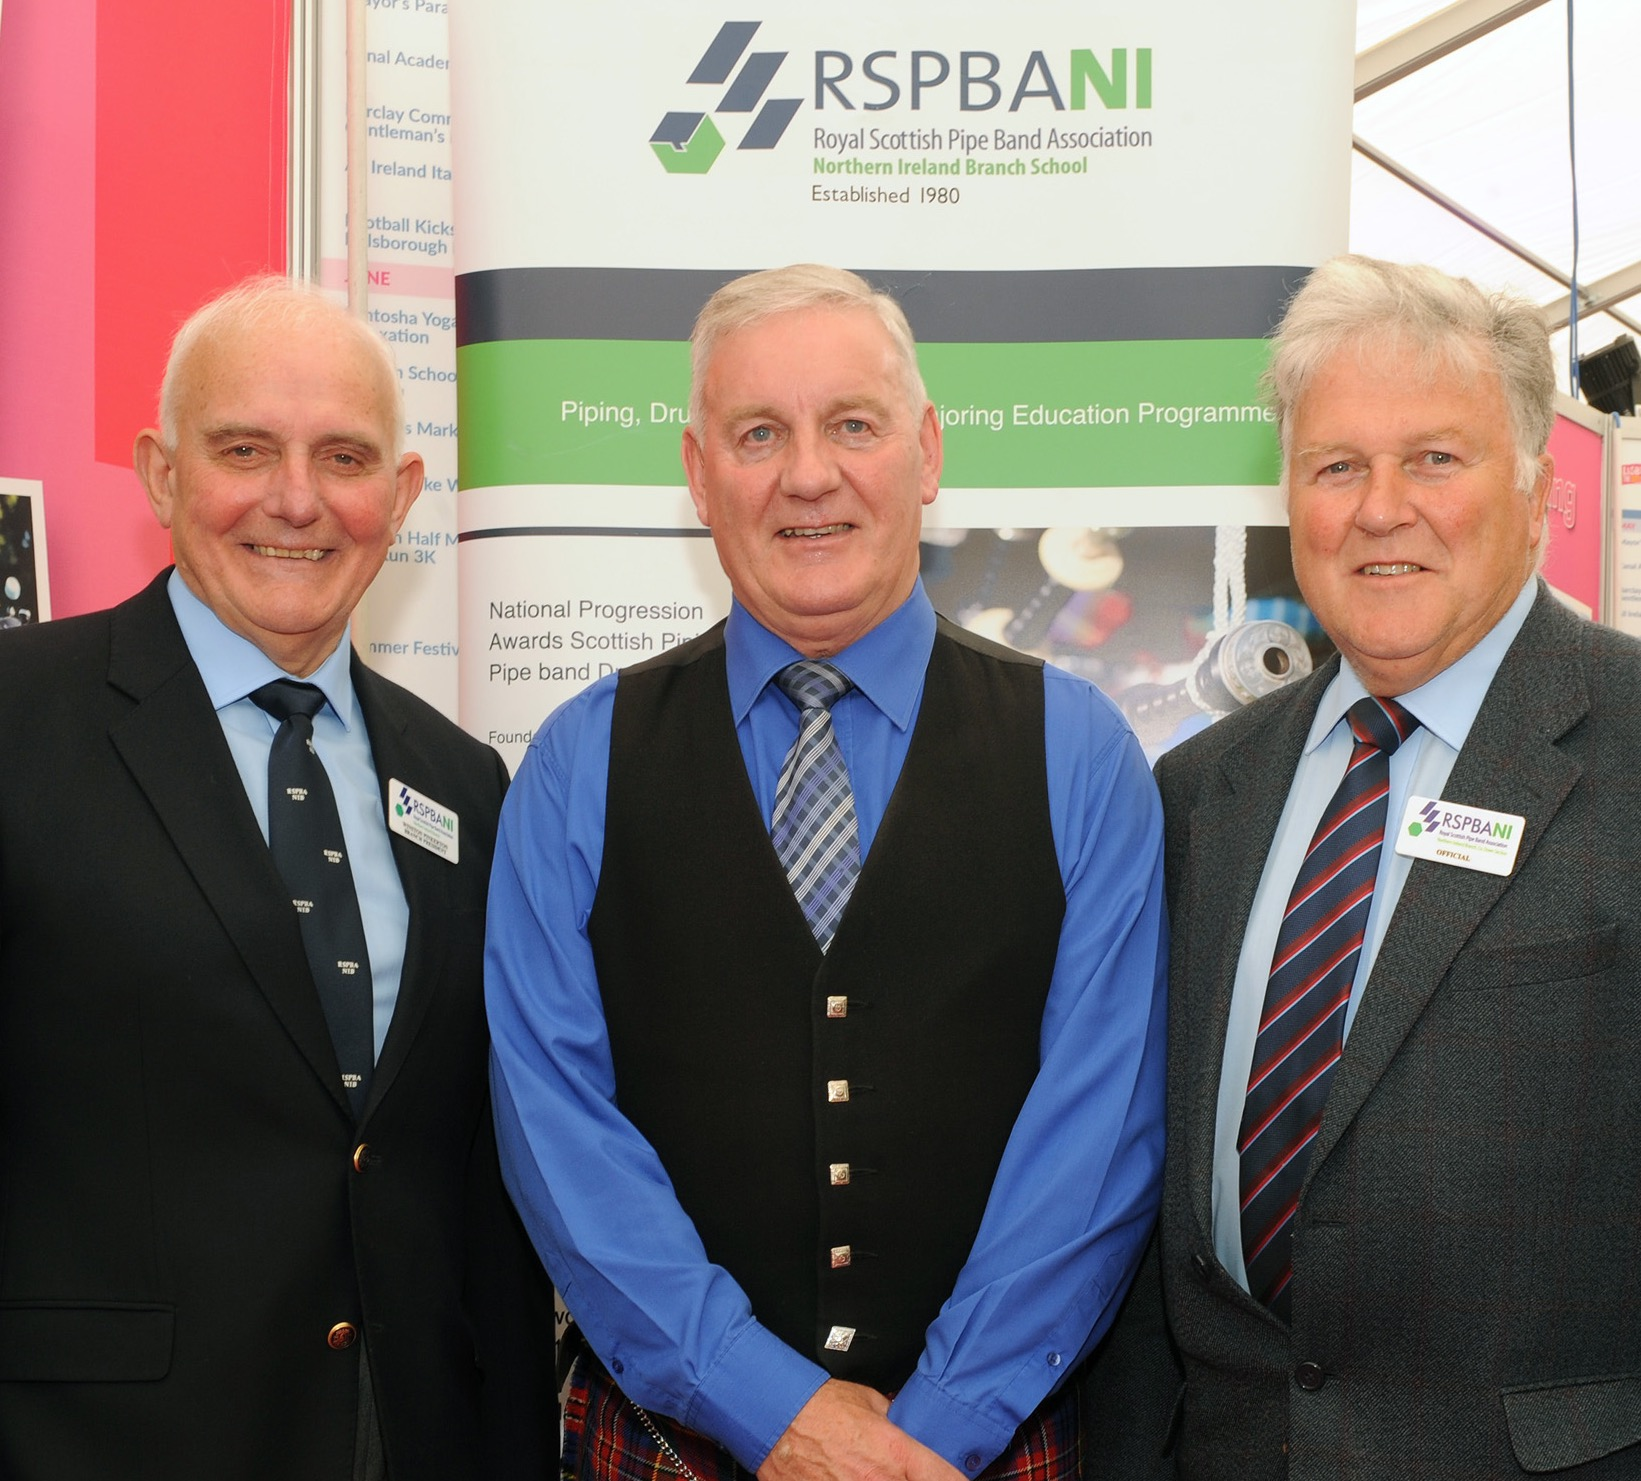 Lowry Ferguson (RSPBANI Vice- President), Winston Pinkerton (RSPBANI President) and Derek Mack (RSPBANI Co Down Section Chairman) pictured at the 'Royal Scottish Pipe Band Association' stand at the Balmoral Show.